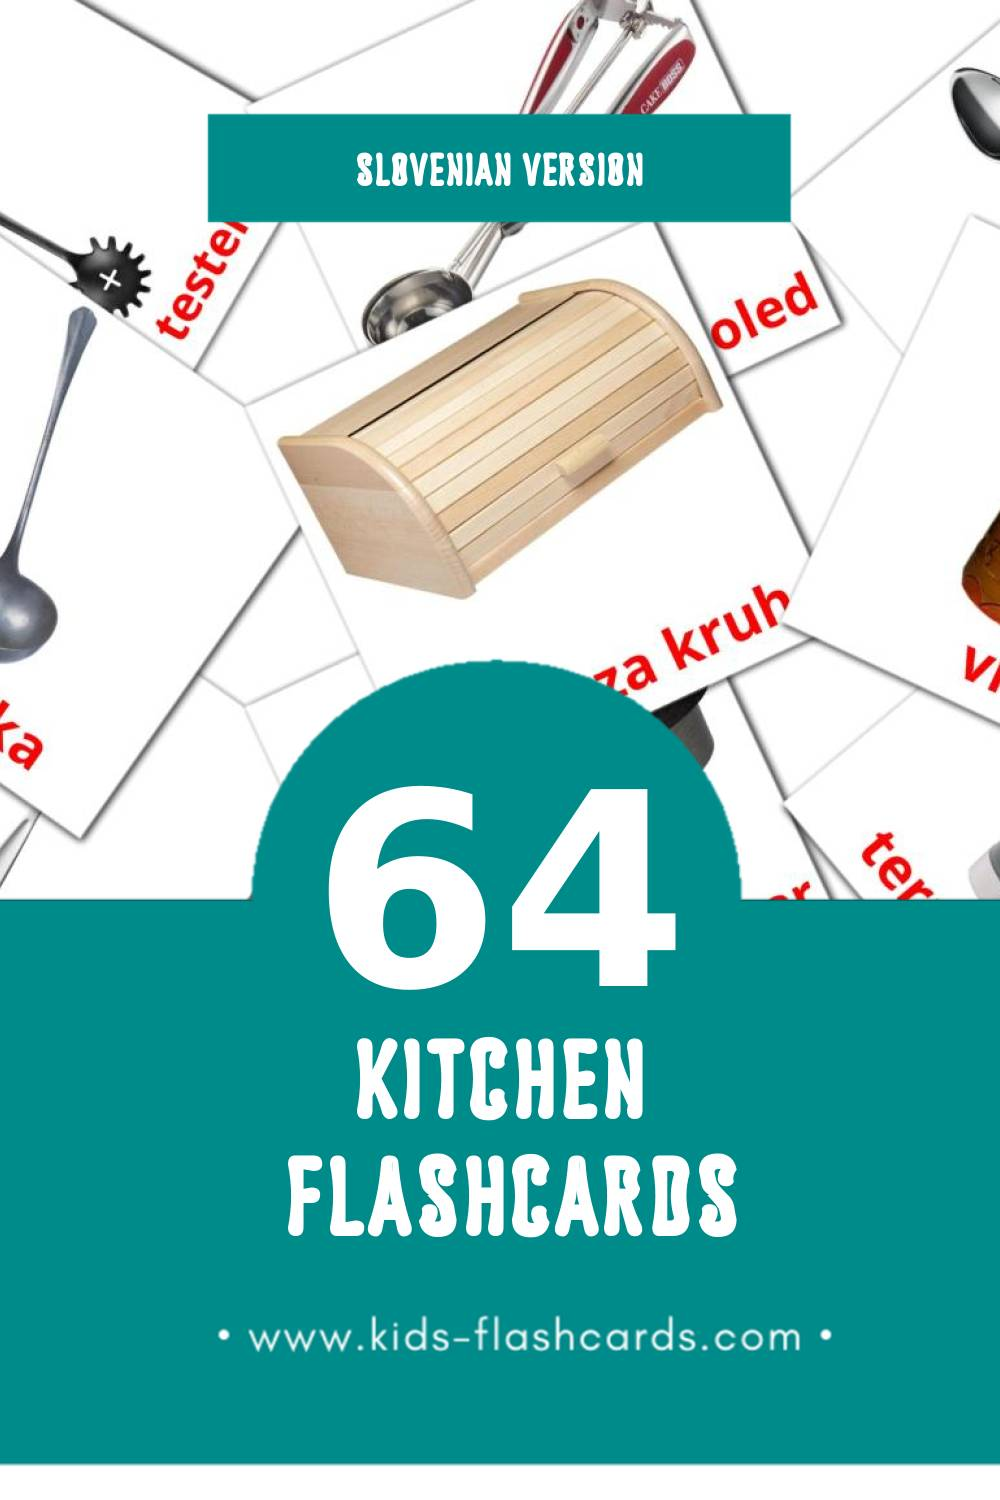 Visual Kuhinja Flashcards for Toddlers (64 cards in Slovenian)